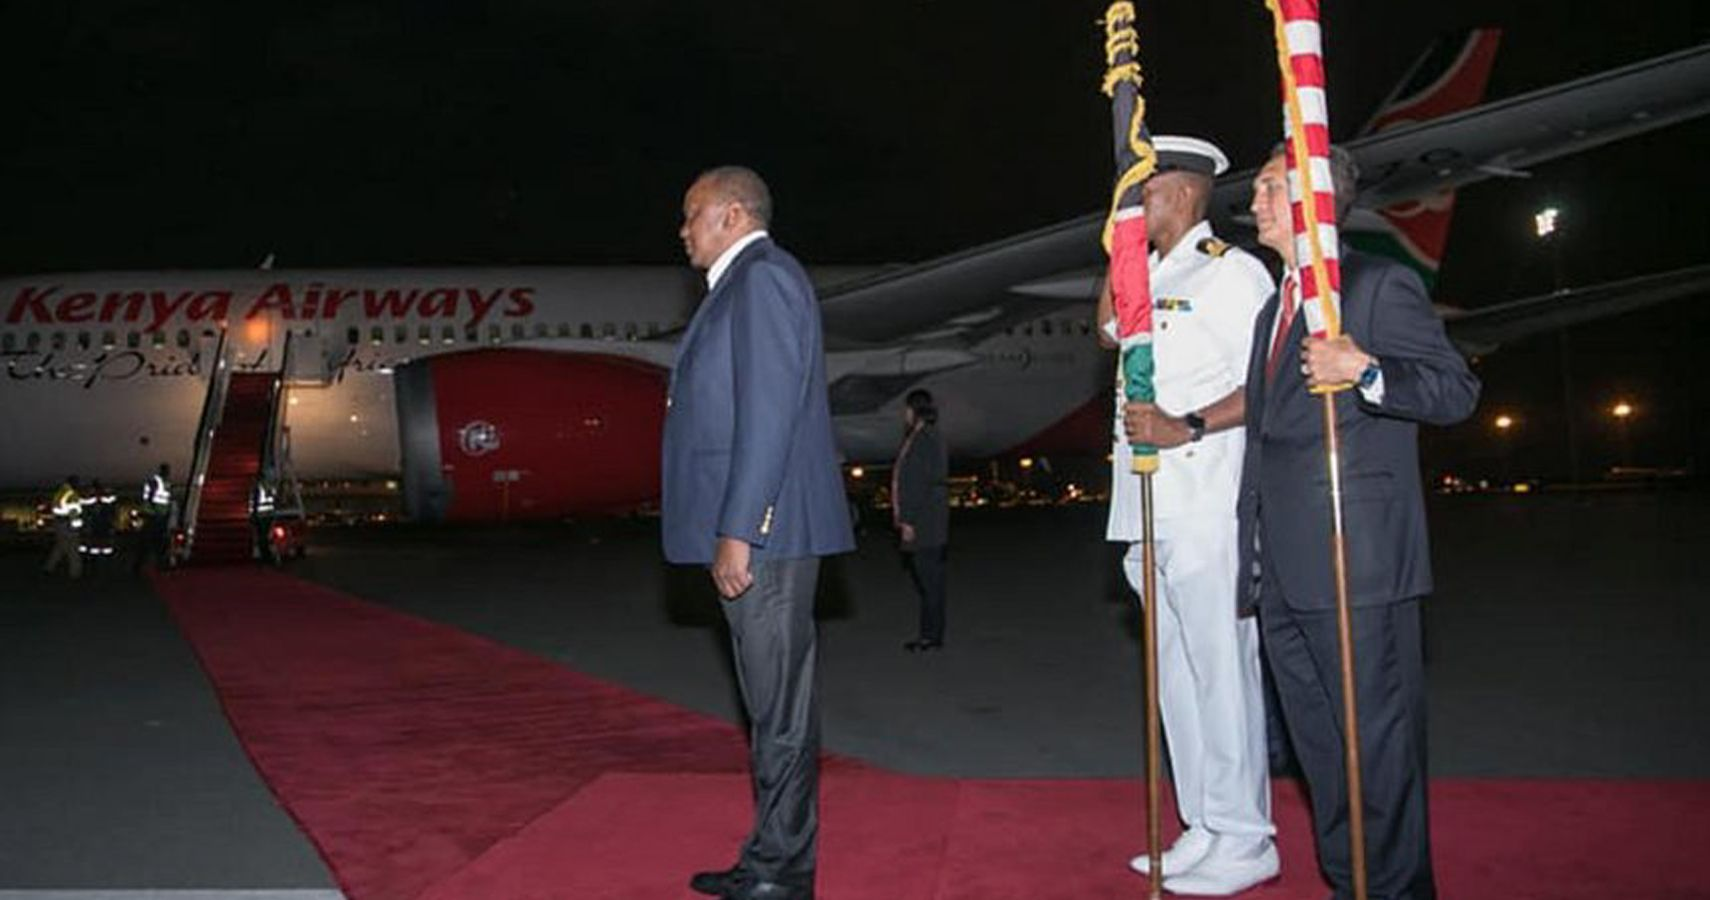 Kenya Airways Makes History After Becoming First East African